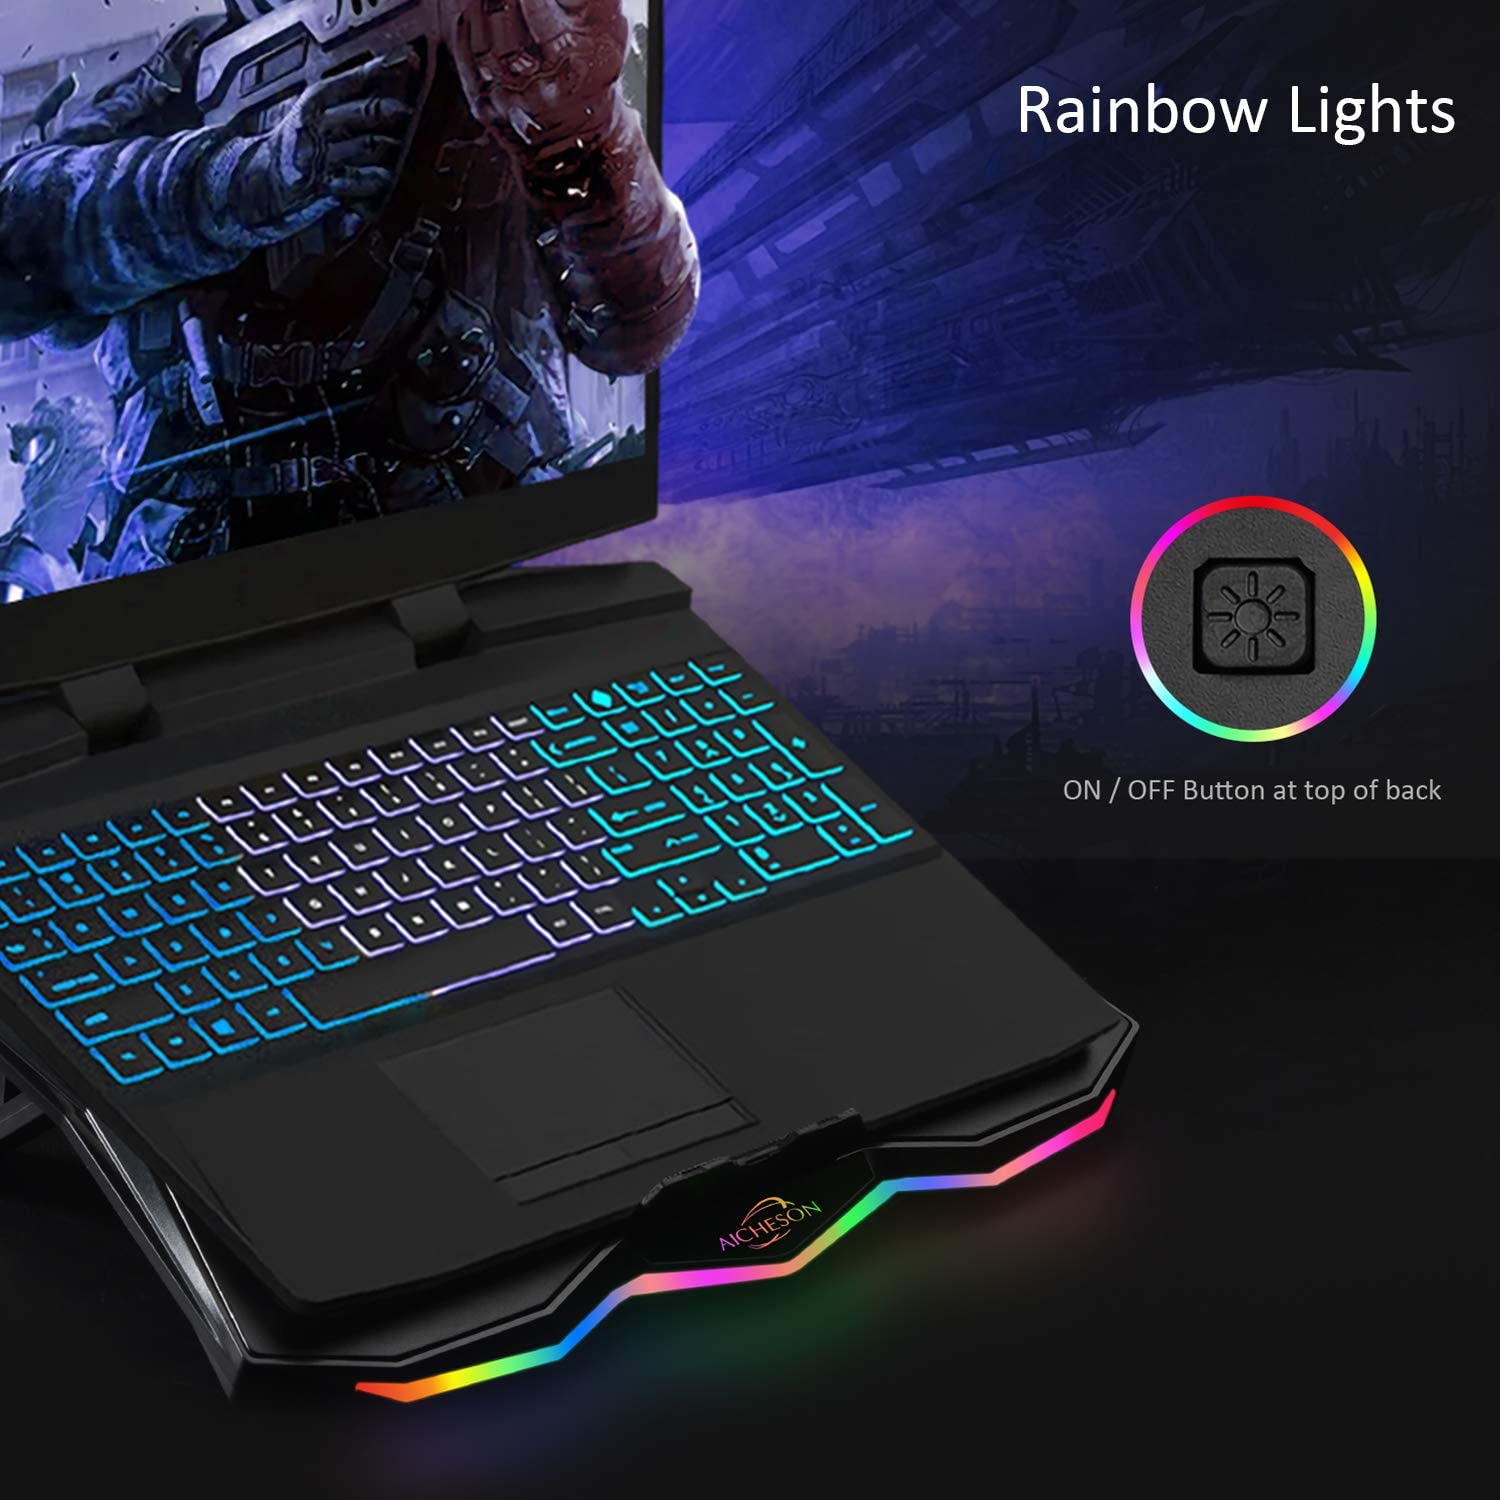 AICHESON Laptop Cooling Cooler Pad with RGB Lights for 15.6-17.3 Inch Computer Notebooks Metal Panel 1 Big Fan